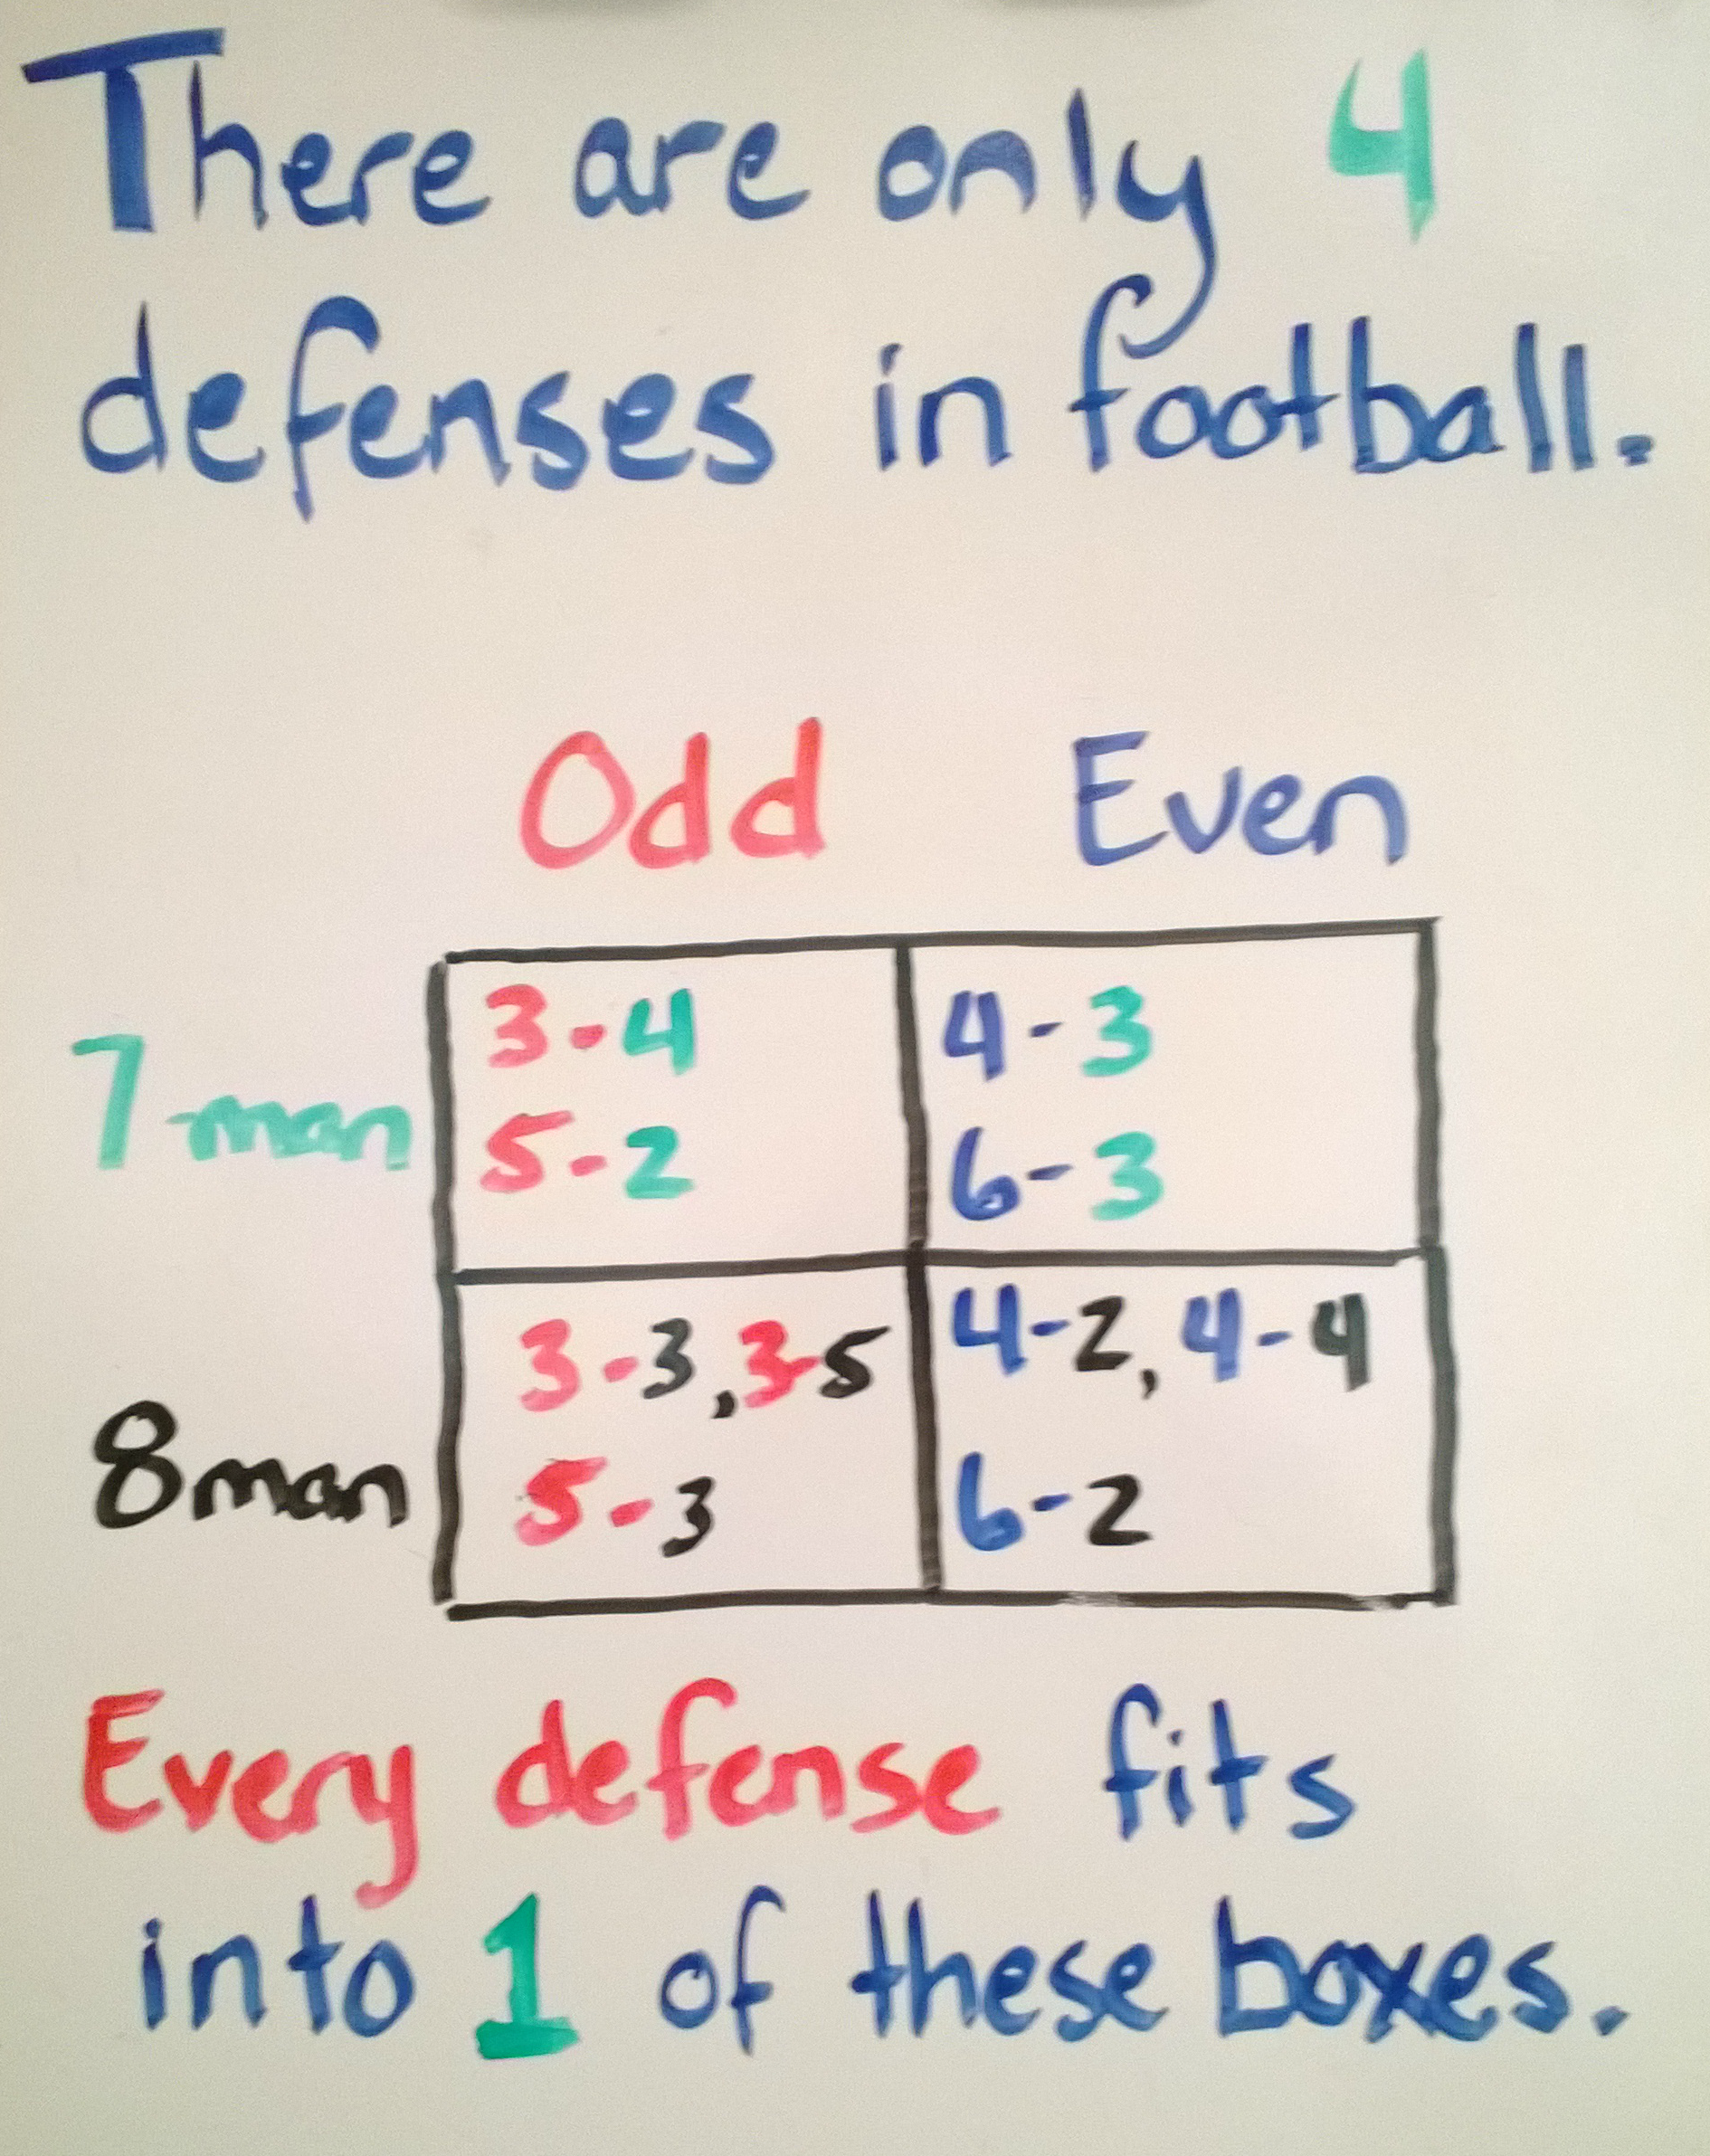 Fbcp Episode 80 The 4 Types Of Defense In Football